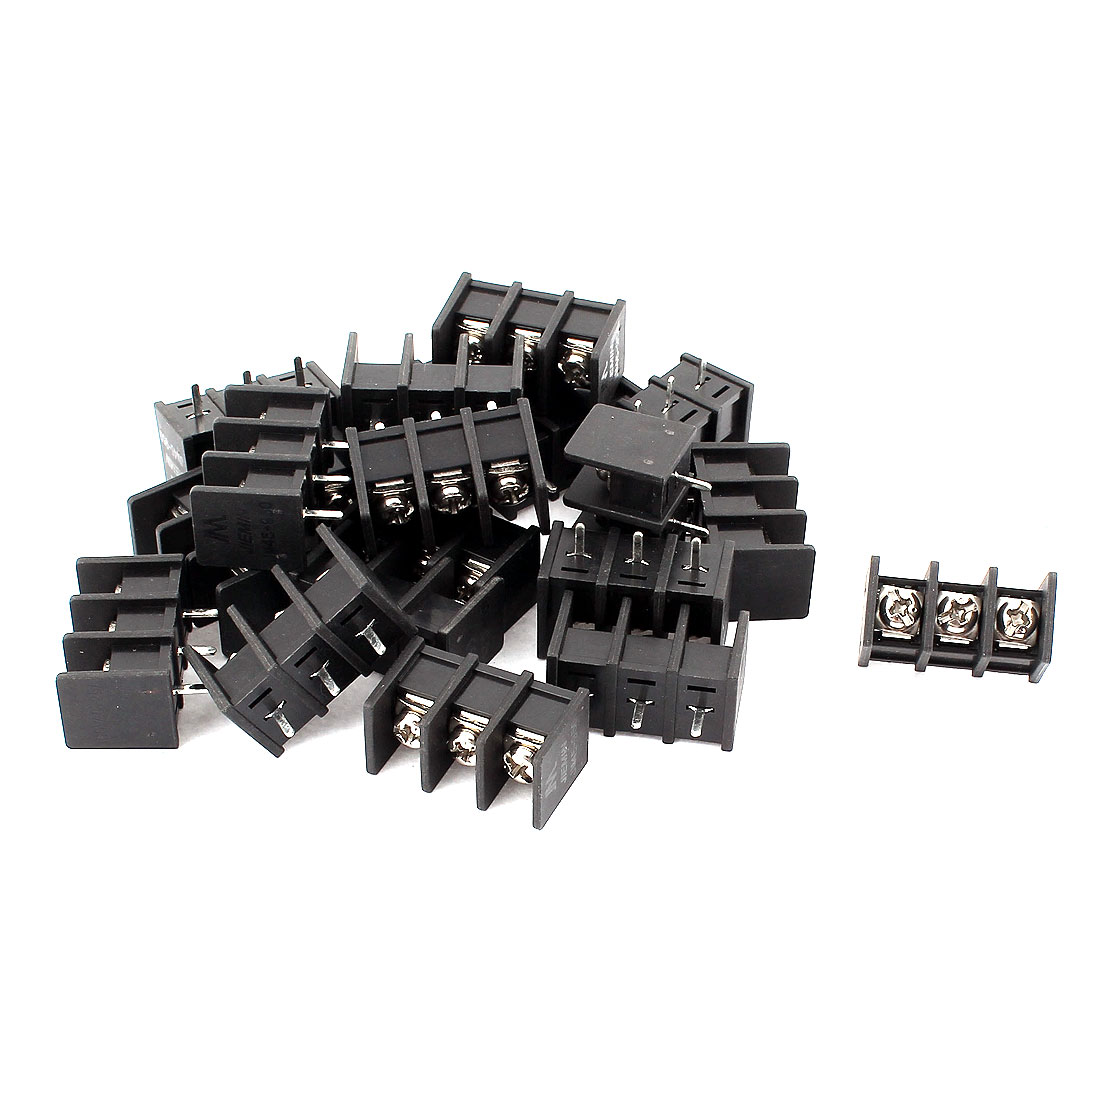 20 Pcs 8.02mm Pitch 3P PCB Black Screw Terminal Block Connector 300V 25A